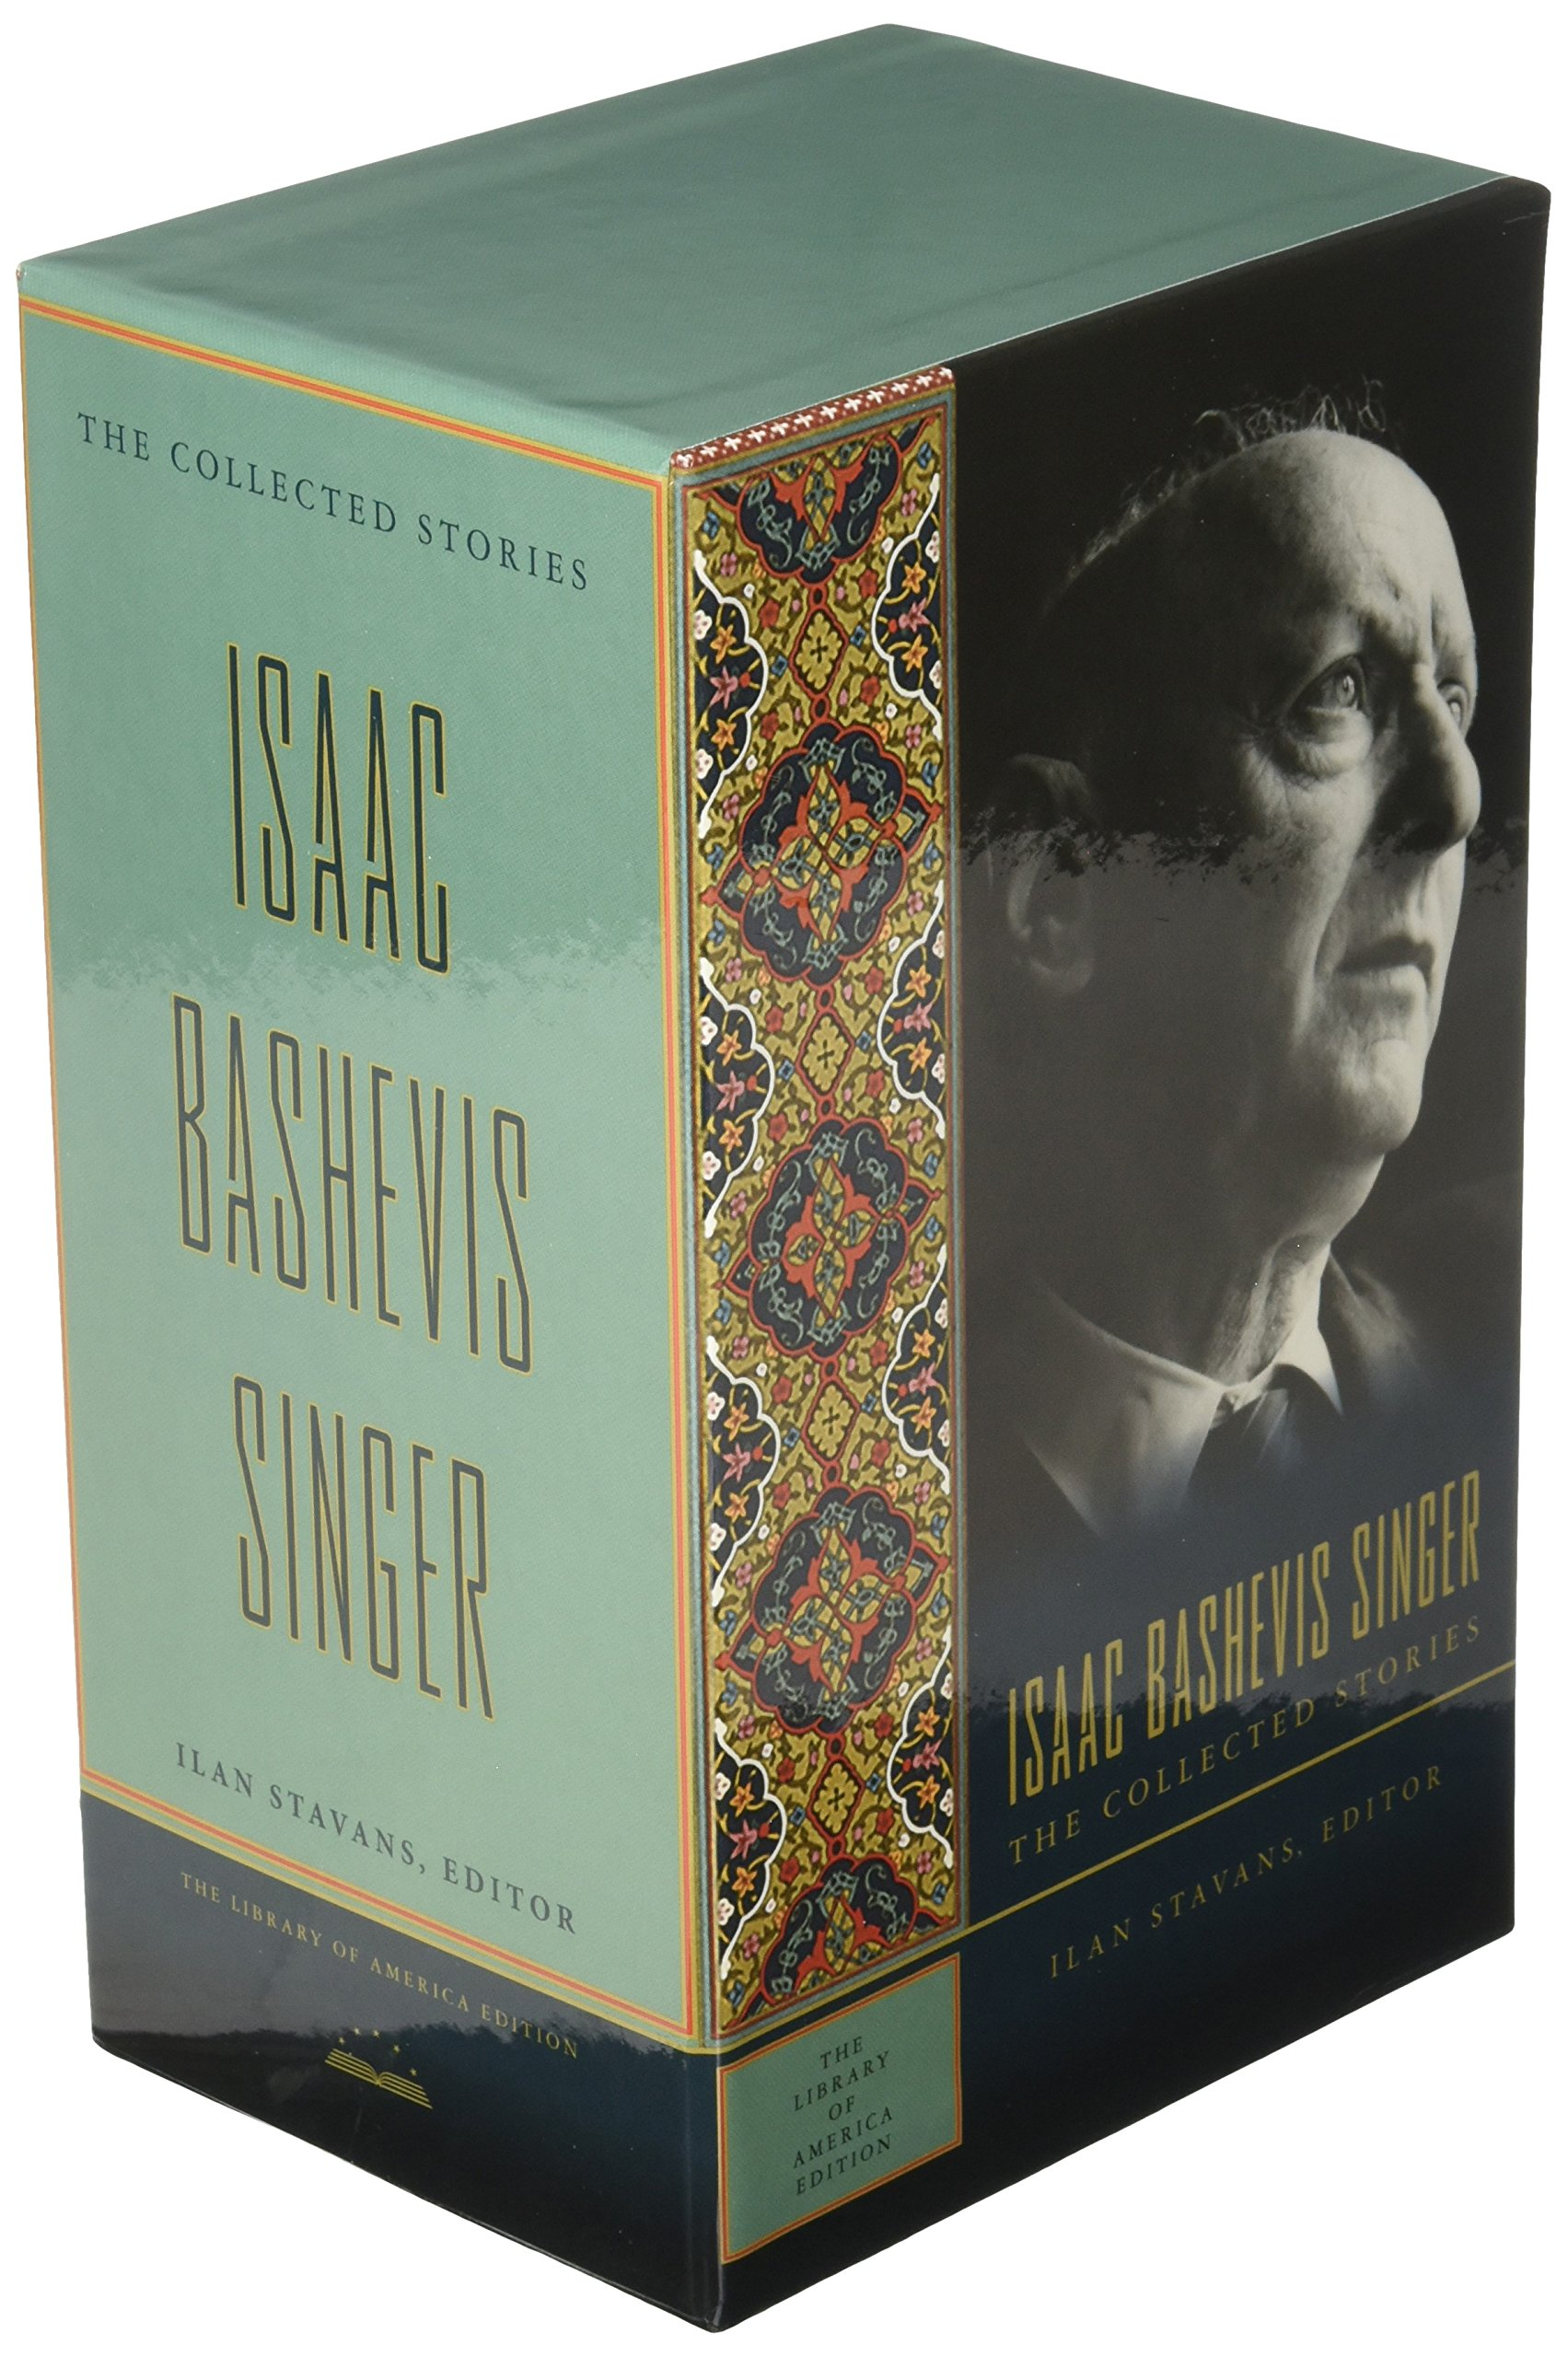 Read The Collected Stories Of Isaac Bashevis Singer By Isaac Bashevis Singer